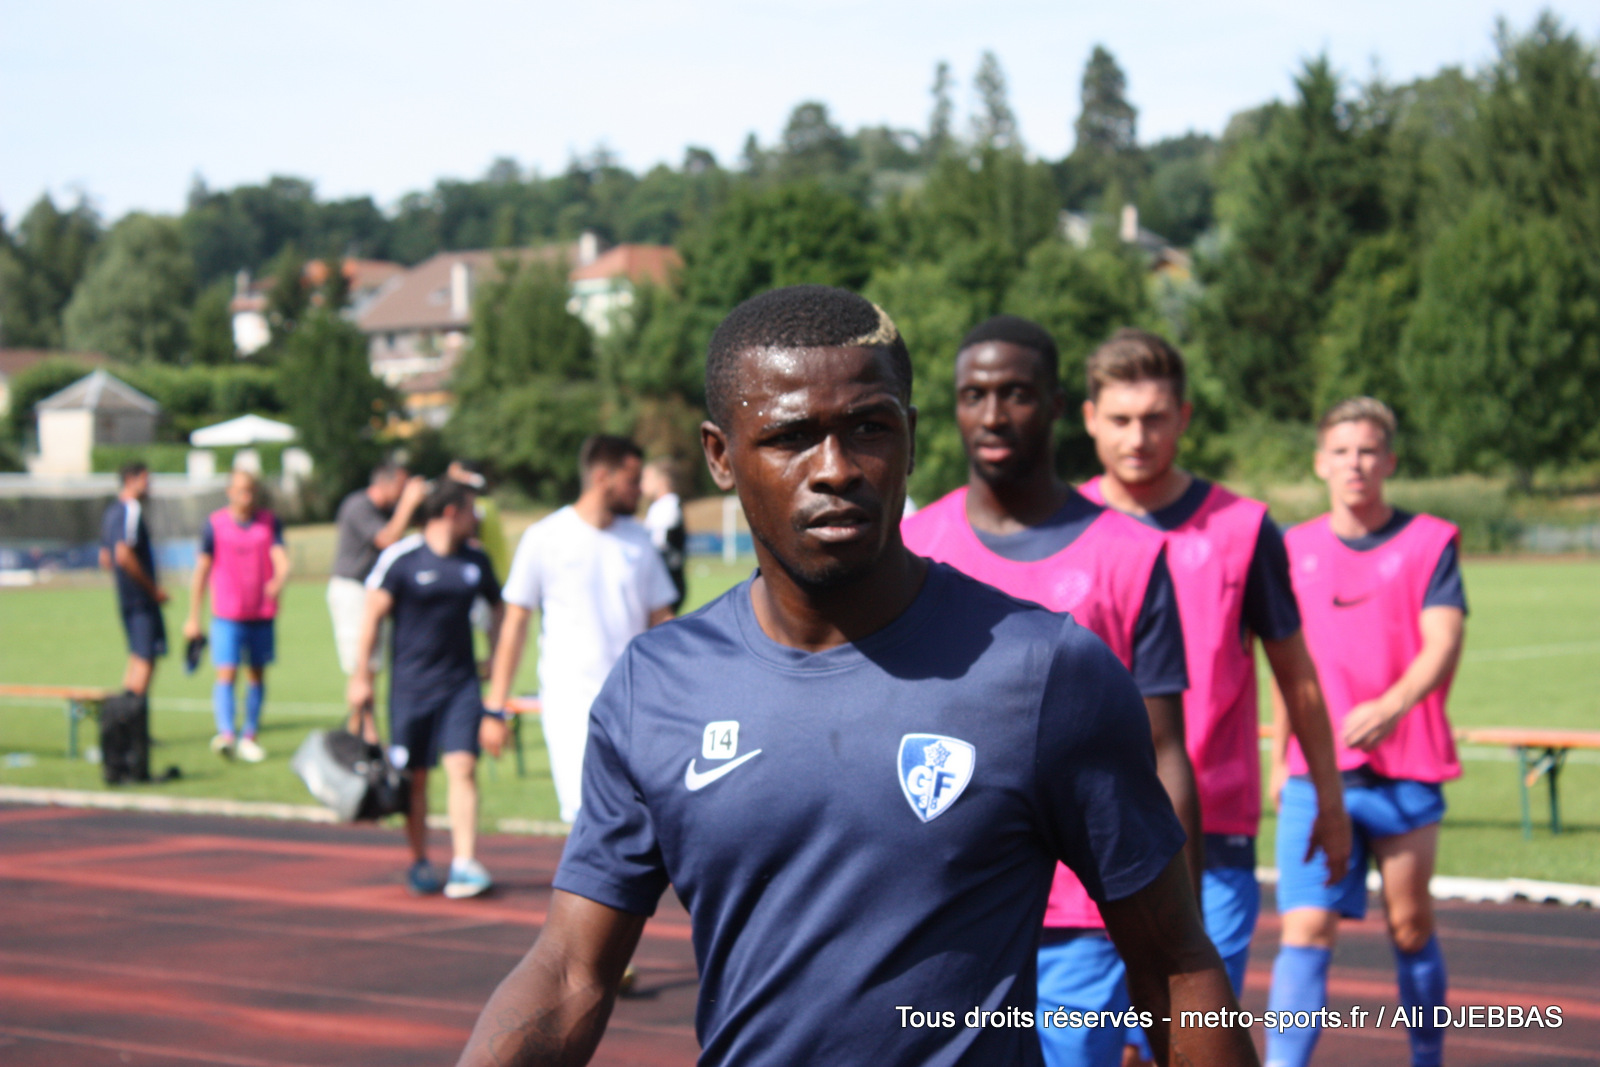 The Good, the Bad and The Queen : retour sur ESSG – GF38 (0-3)